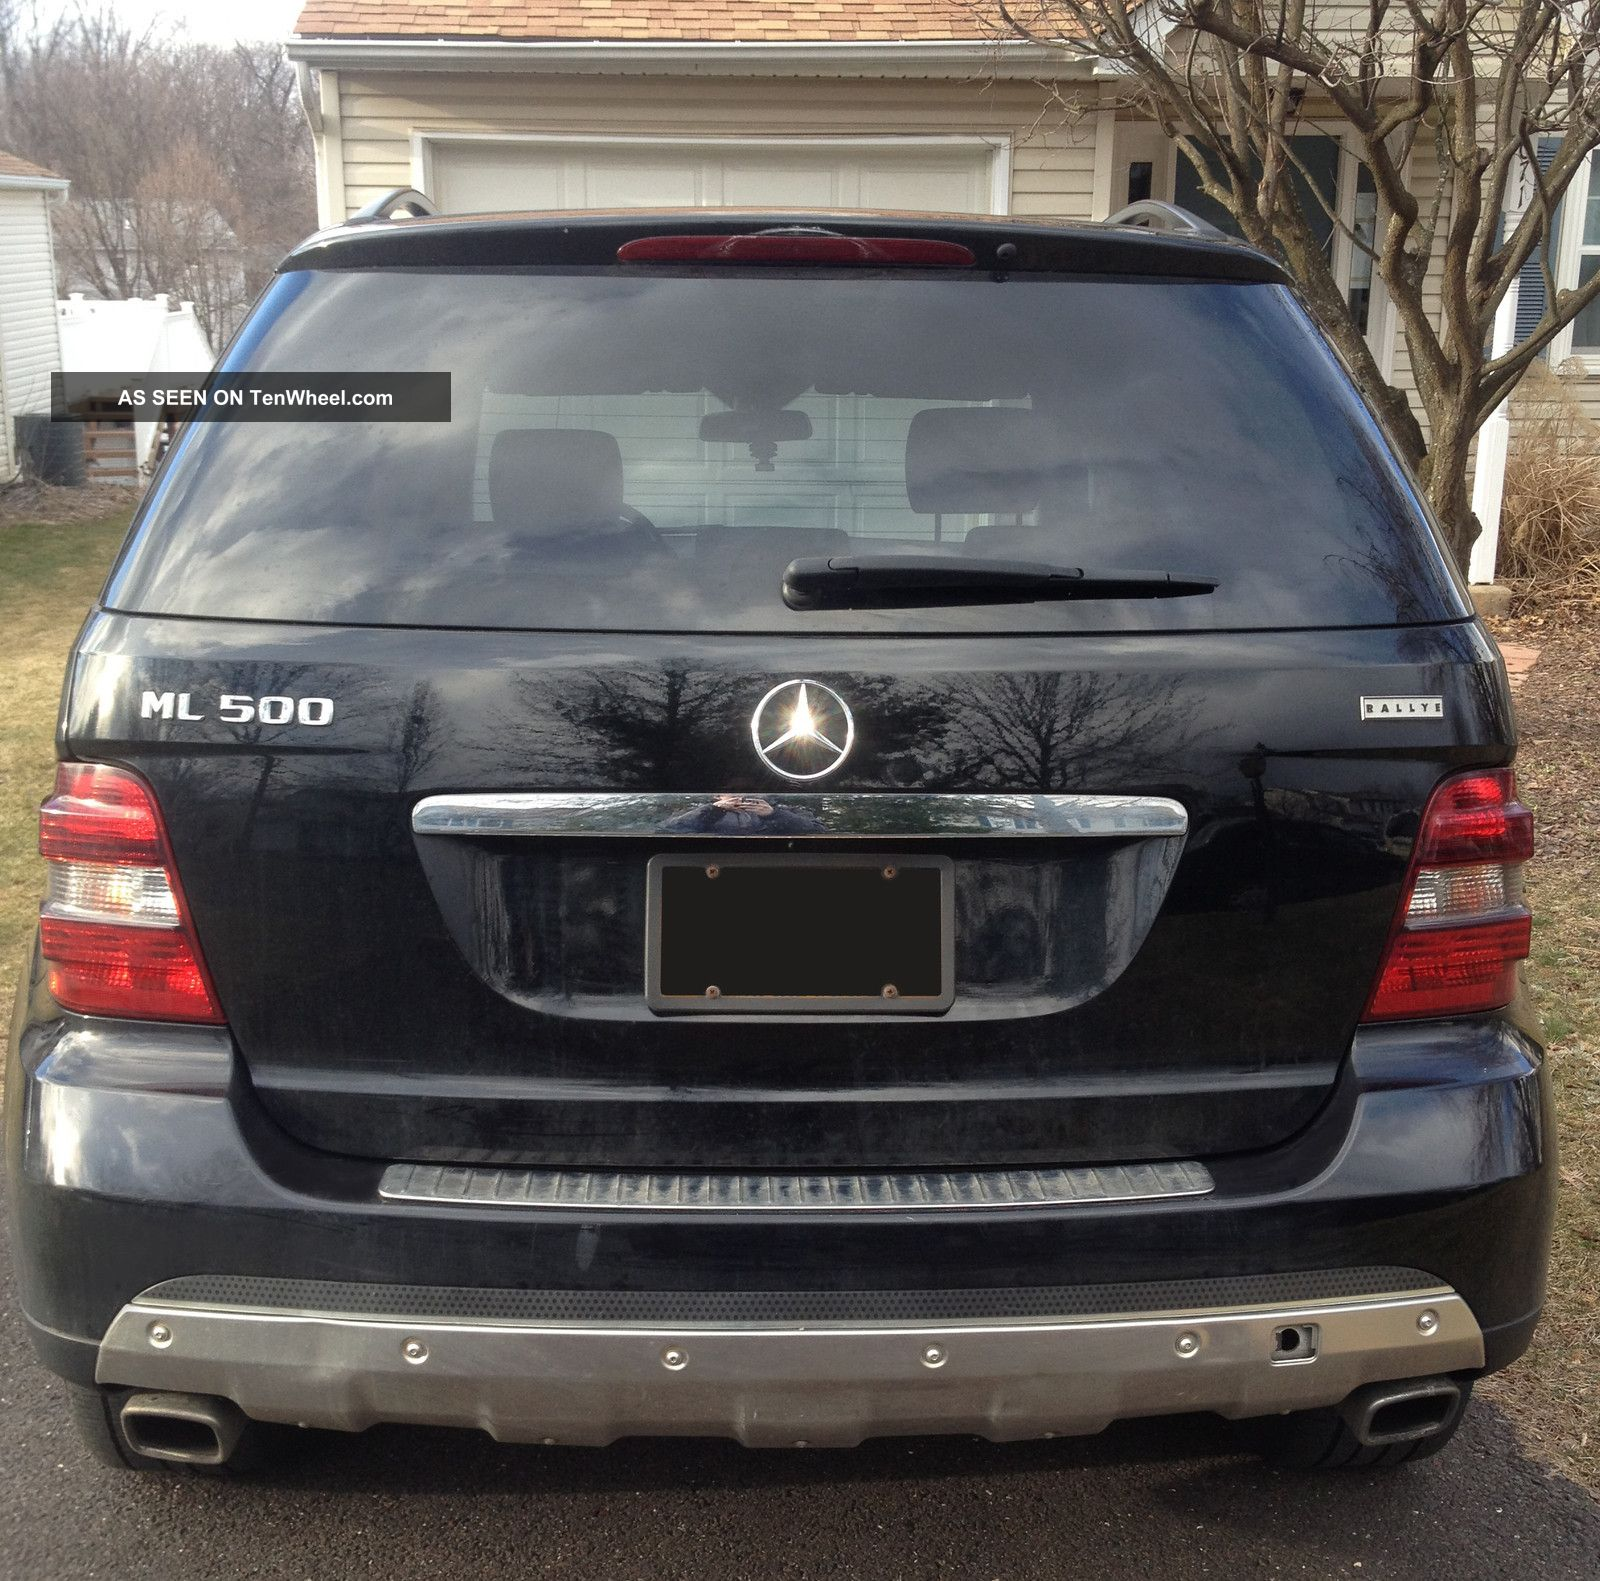 Benz Ml500 Base Sport Utility 4